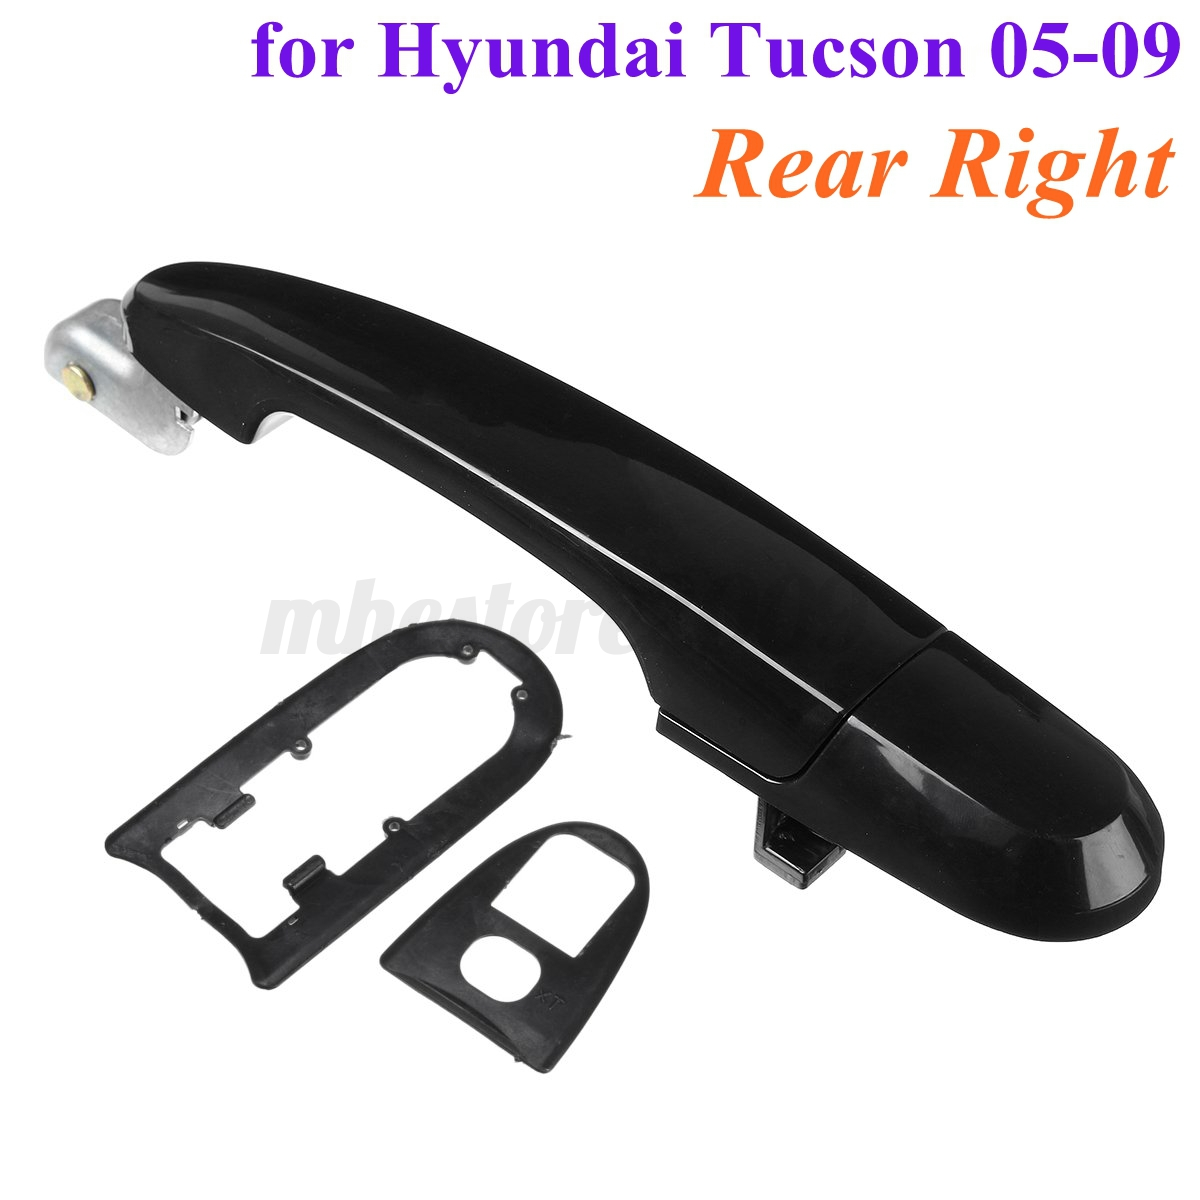 Image is loading Rear-Outer-Black-Door-Handle-For-Hyundai-Tucson-  sc 1 st  eBay & Rear Outer Black Door Handle For Hyundai Tucson 05-09 836602E020Ca ...